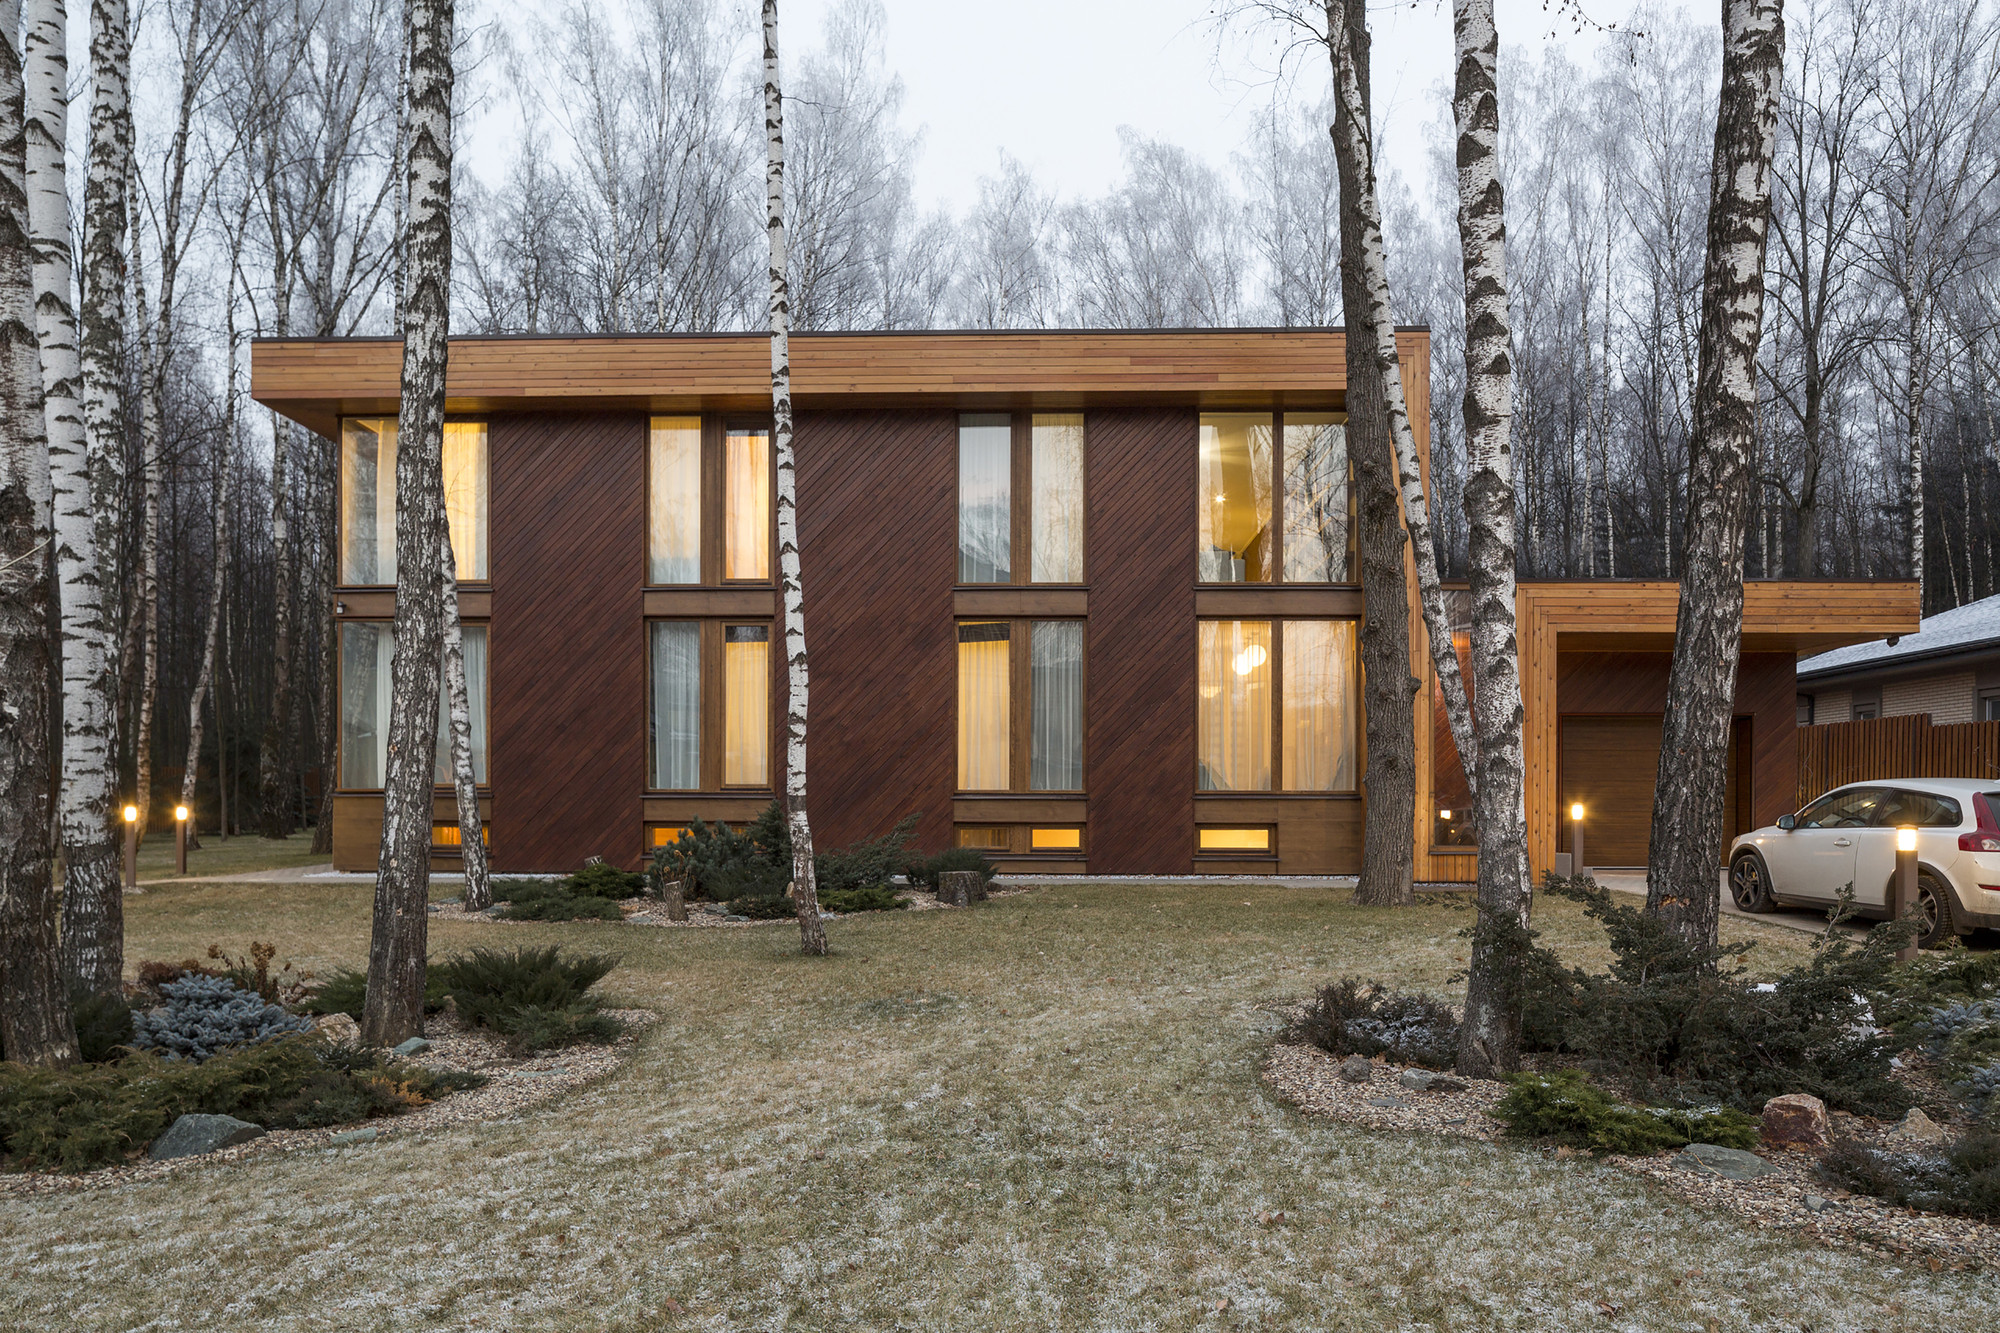 House in the Moscow Region / M2 Architectural Group, © Eugene Kulibaba